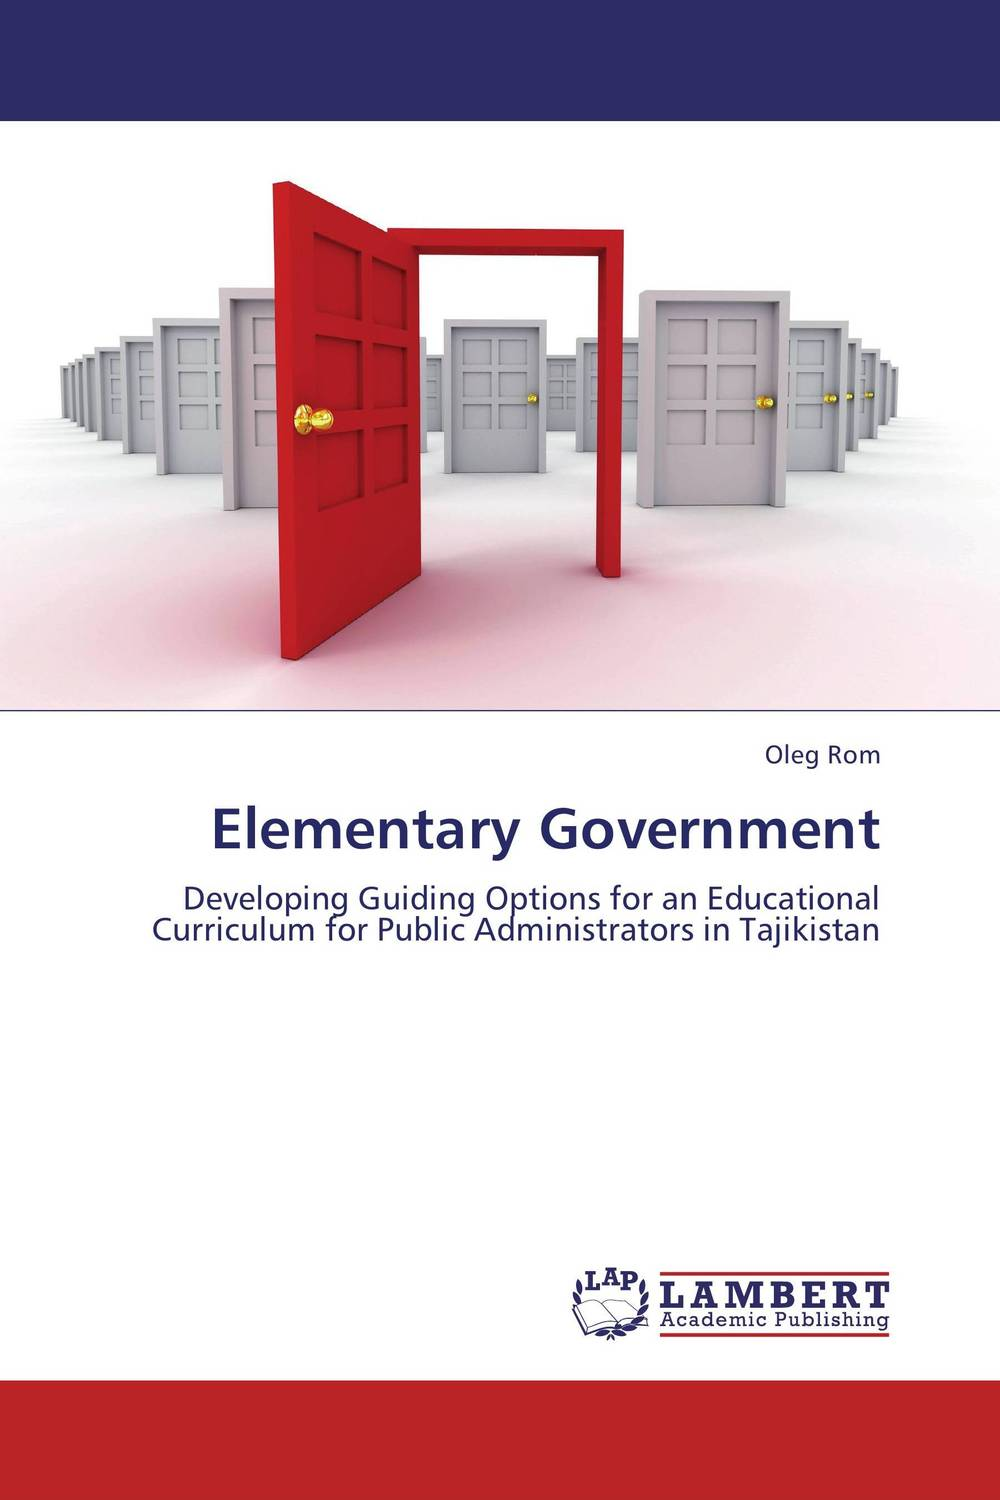 Elementary Government